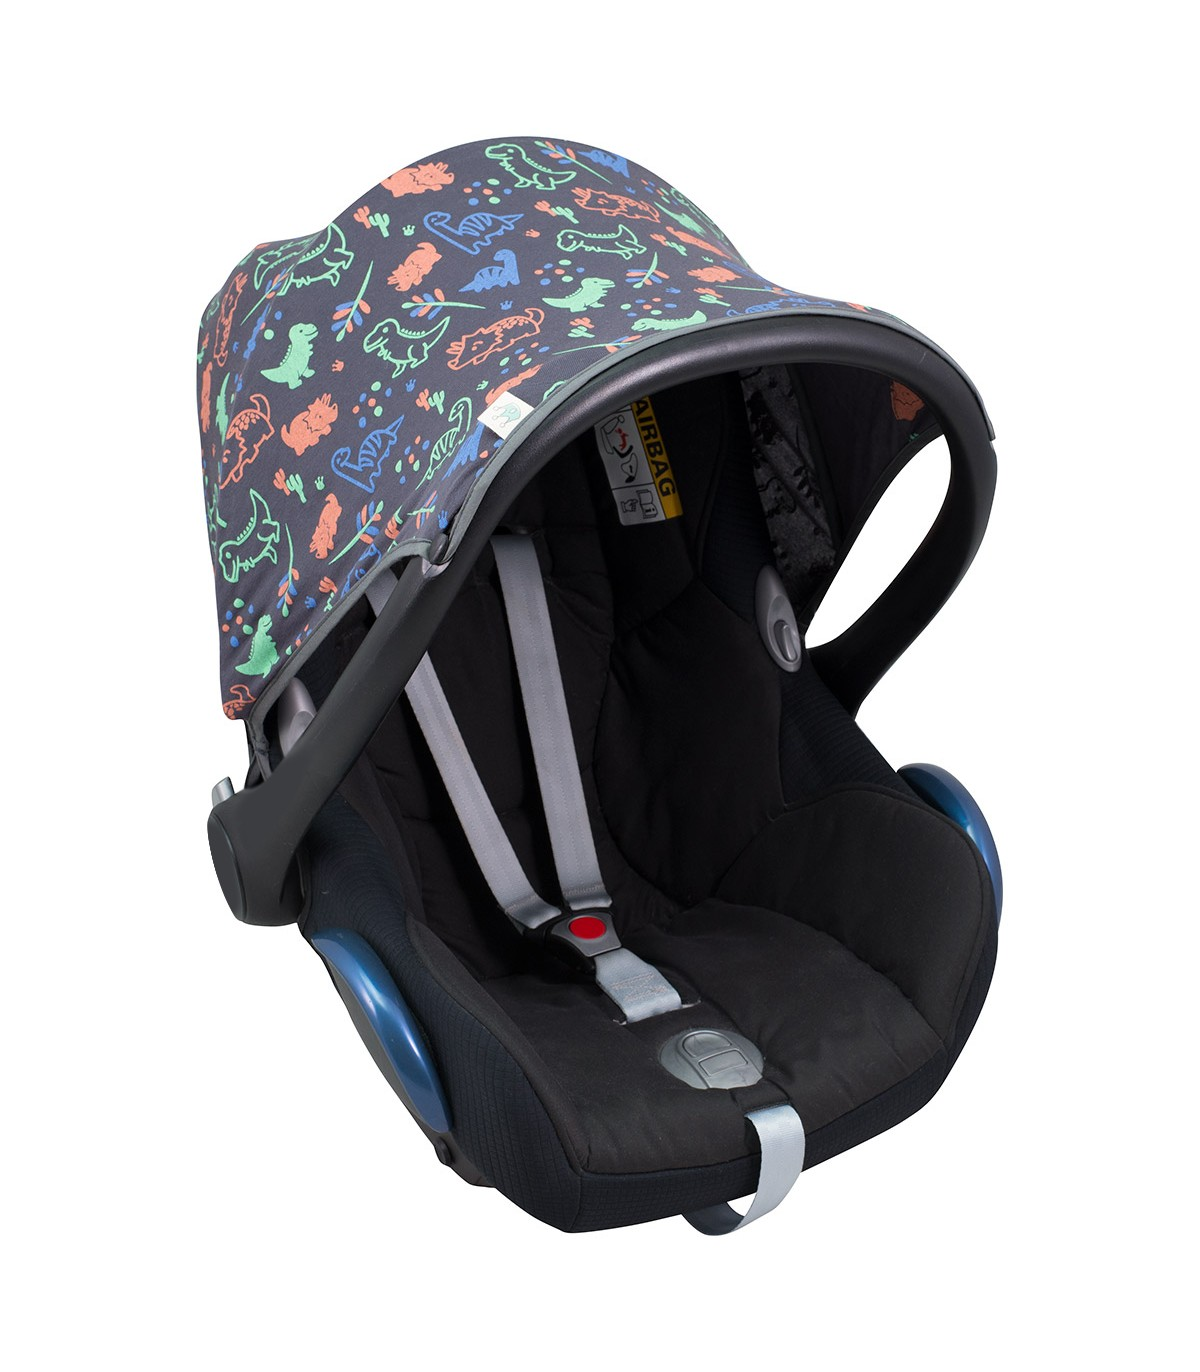 Maxi COSI and Car Seat Janabebe/® Harness Protector for Stroller